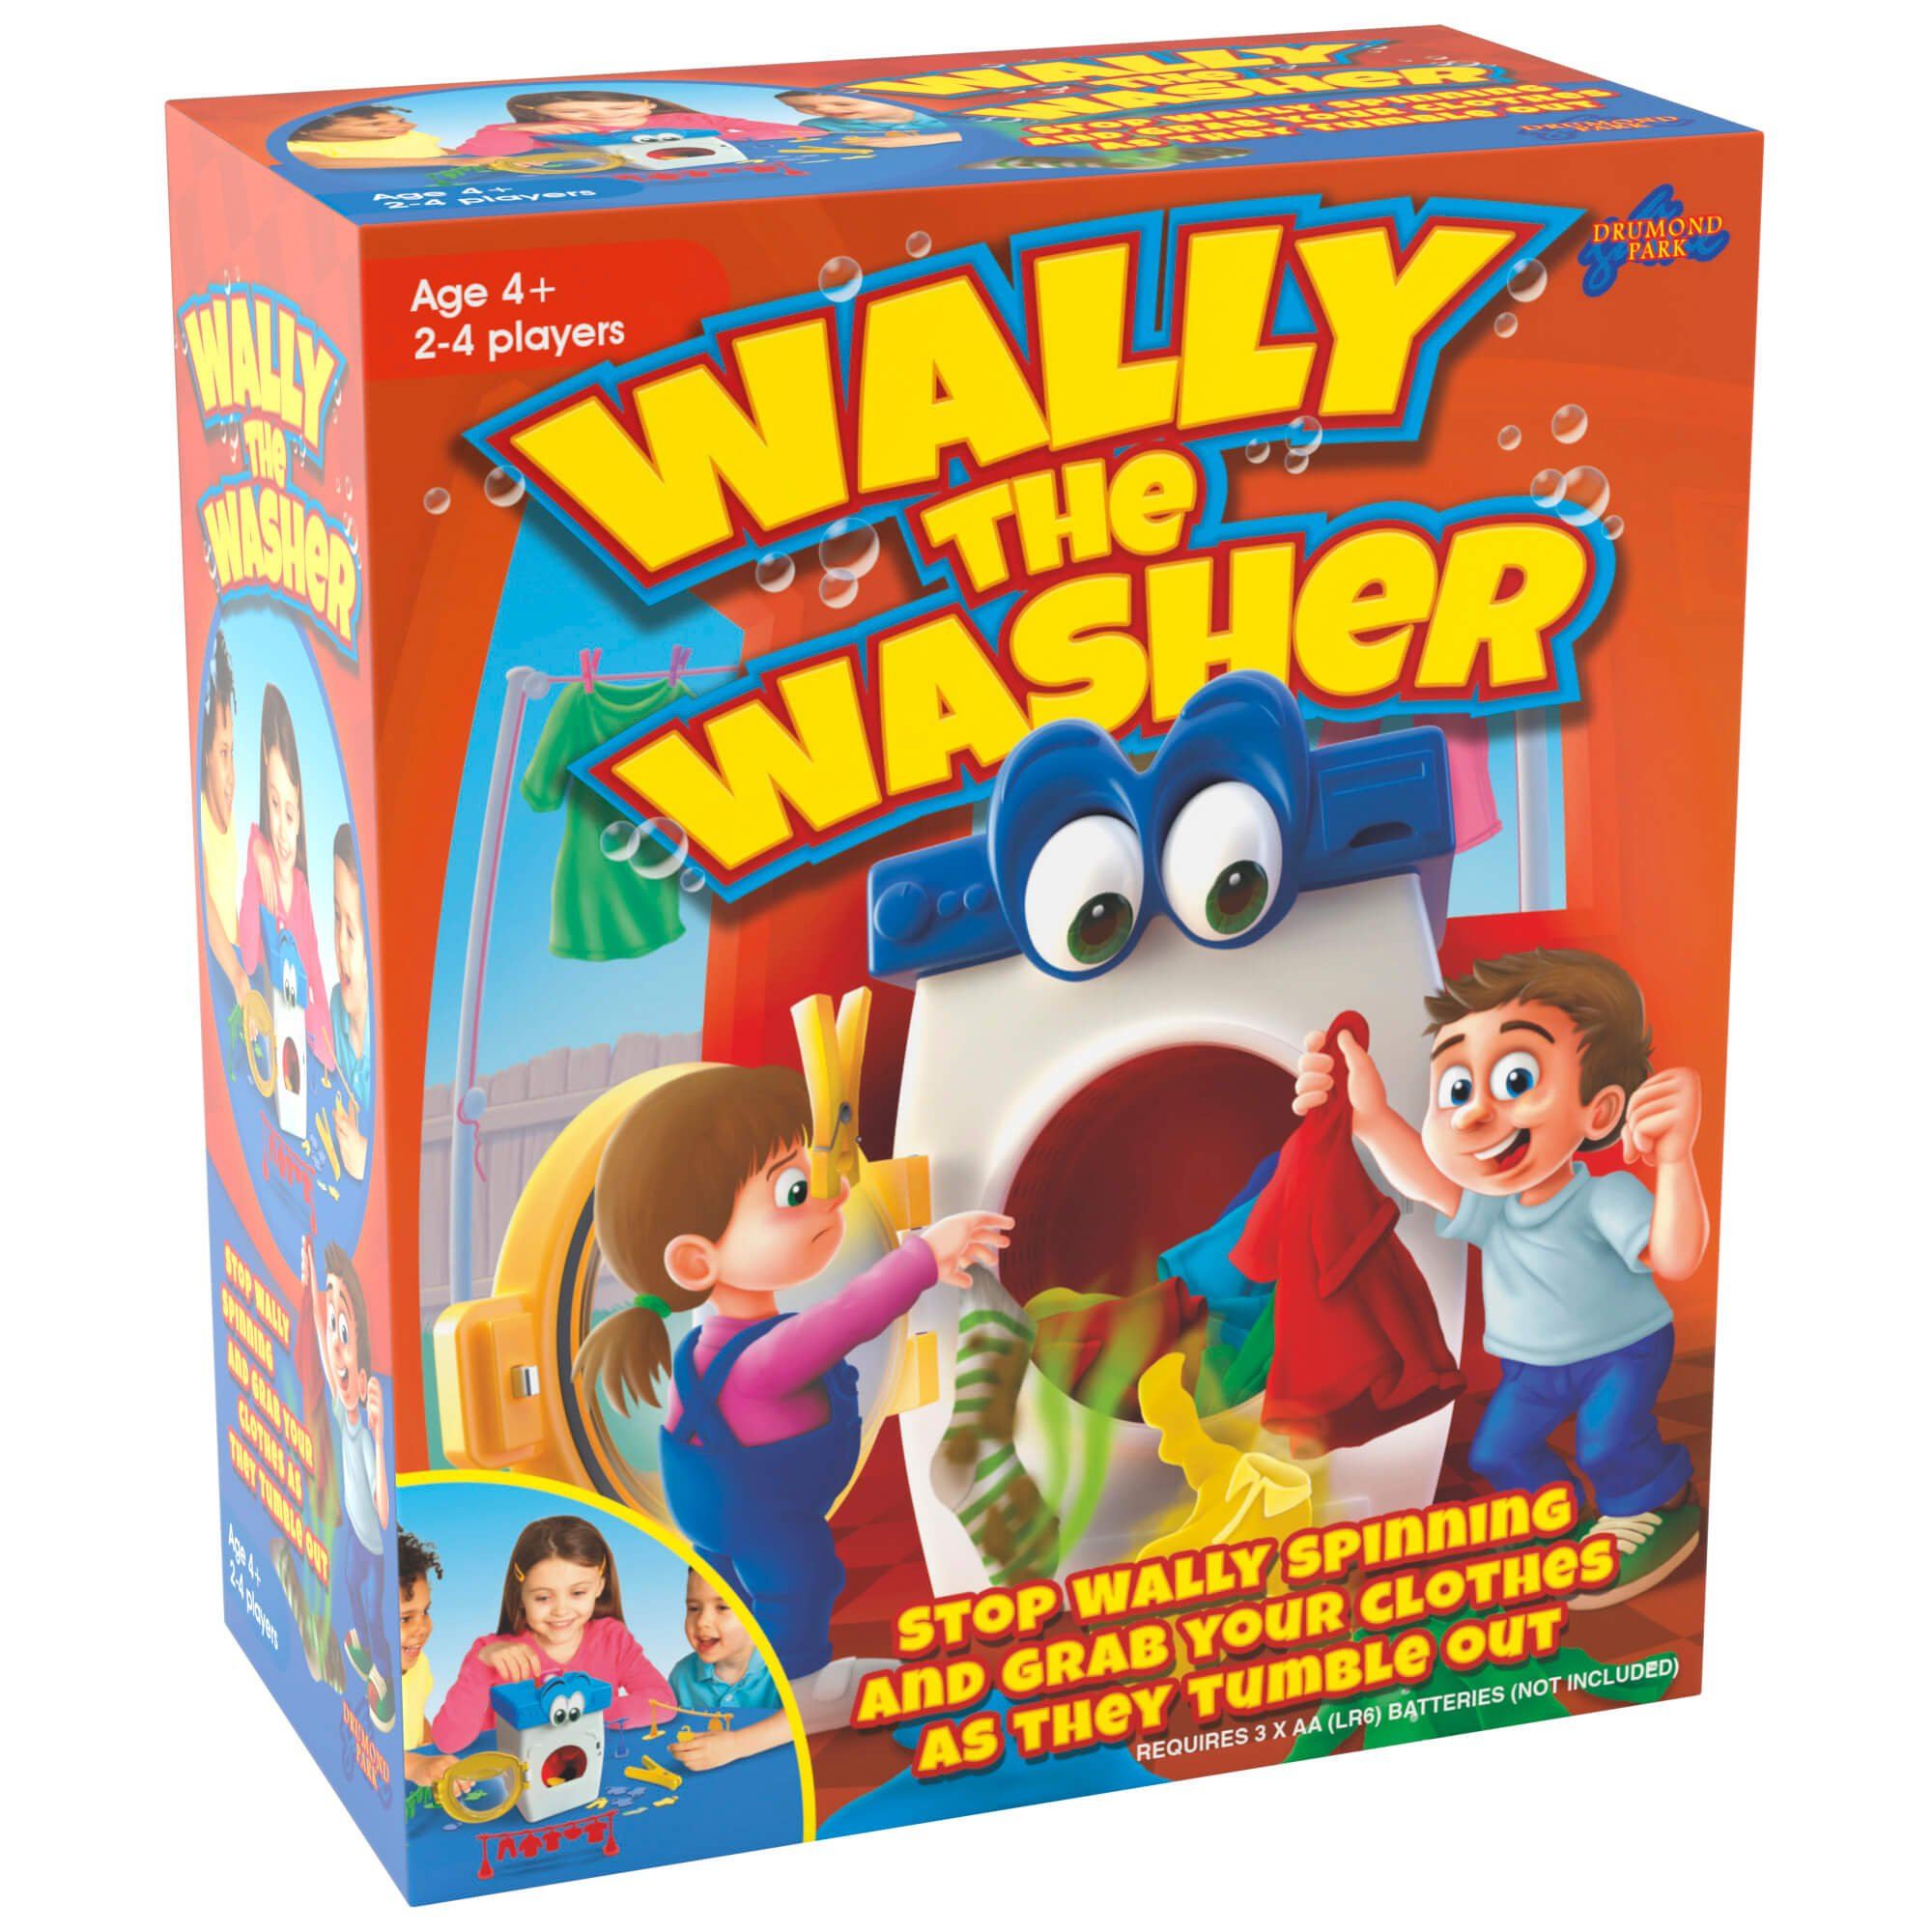 toy washing machine - Wally The Washer Tabletop game box